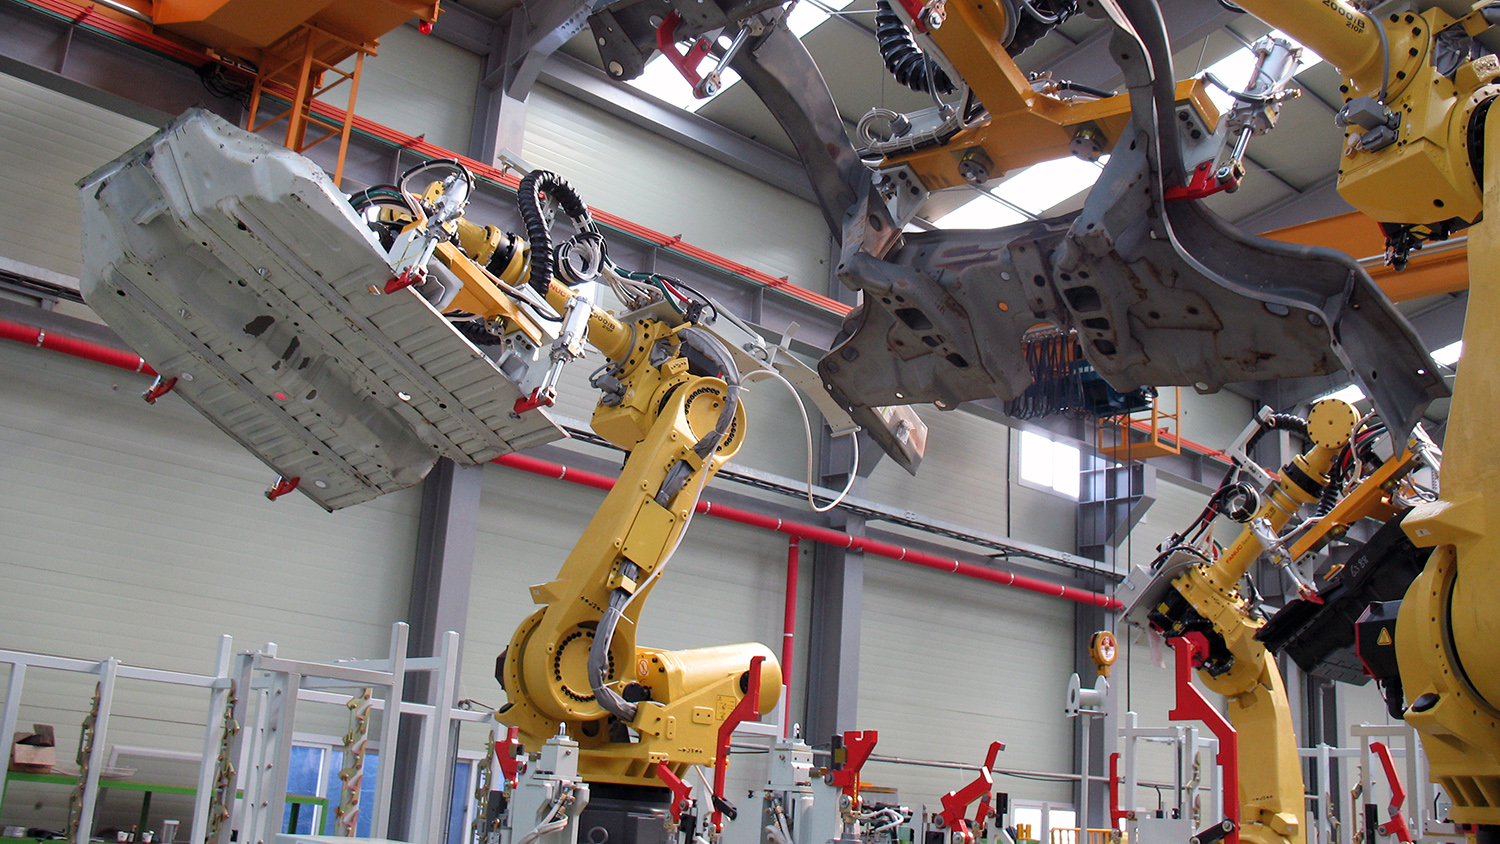 Advanced manufacturing equipment in action in a factory.